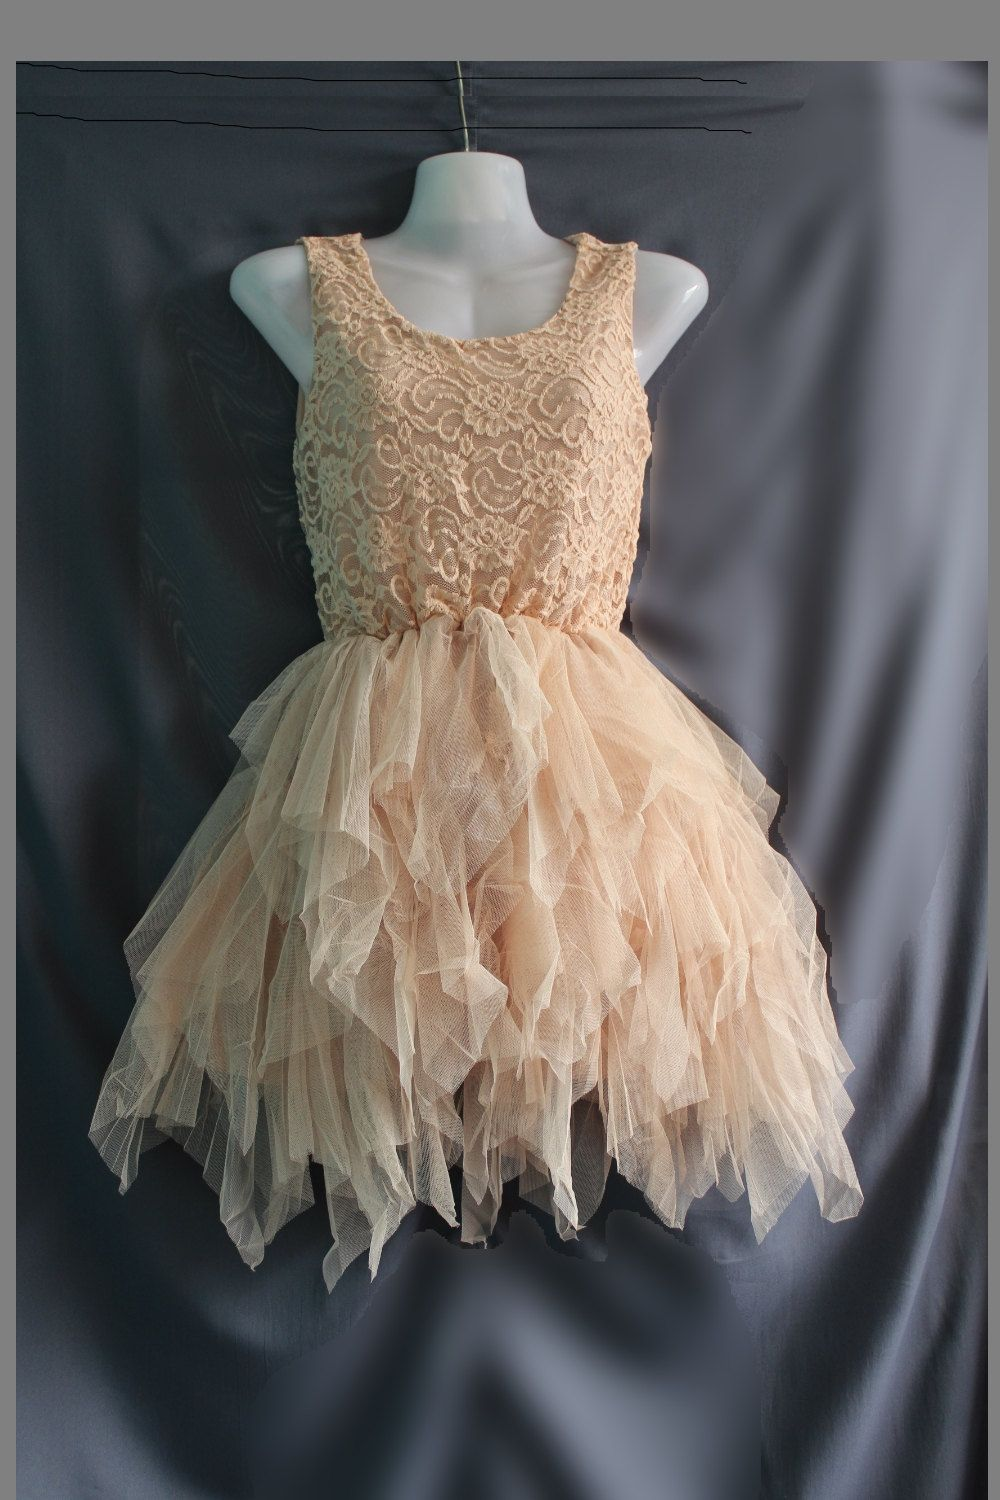 Cute fairy dress